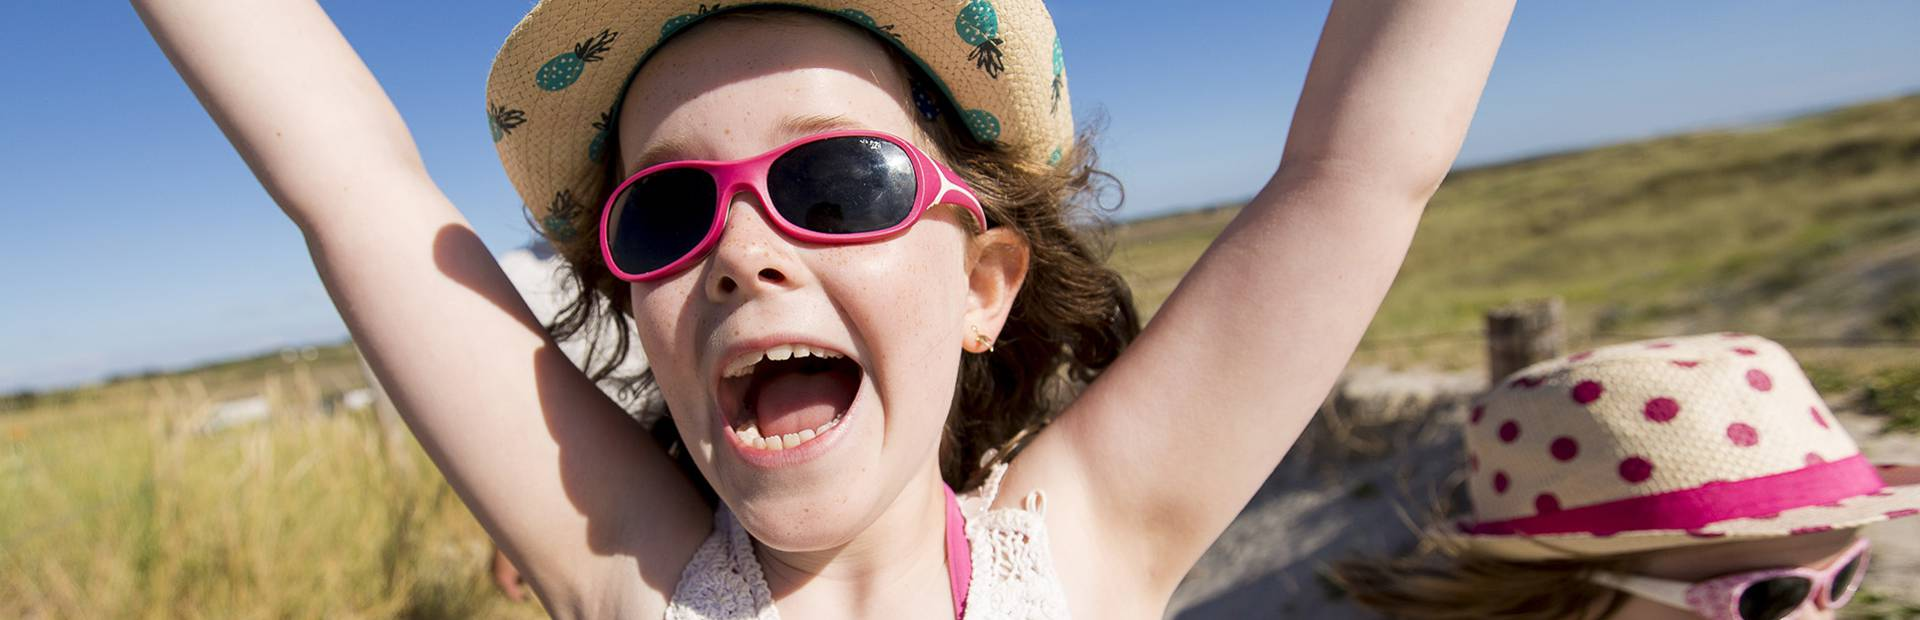 6 fun activities for all the family © Y Derennes